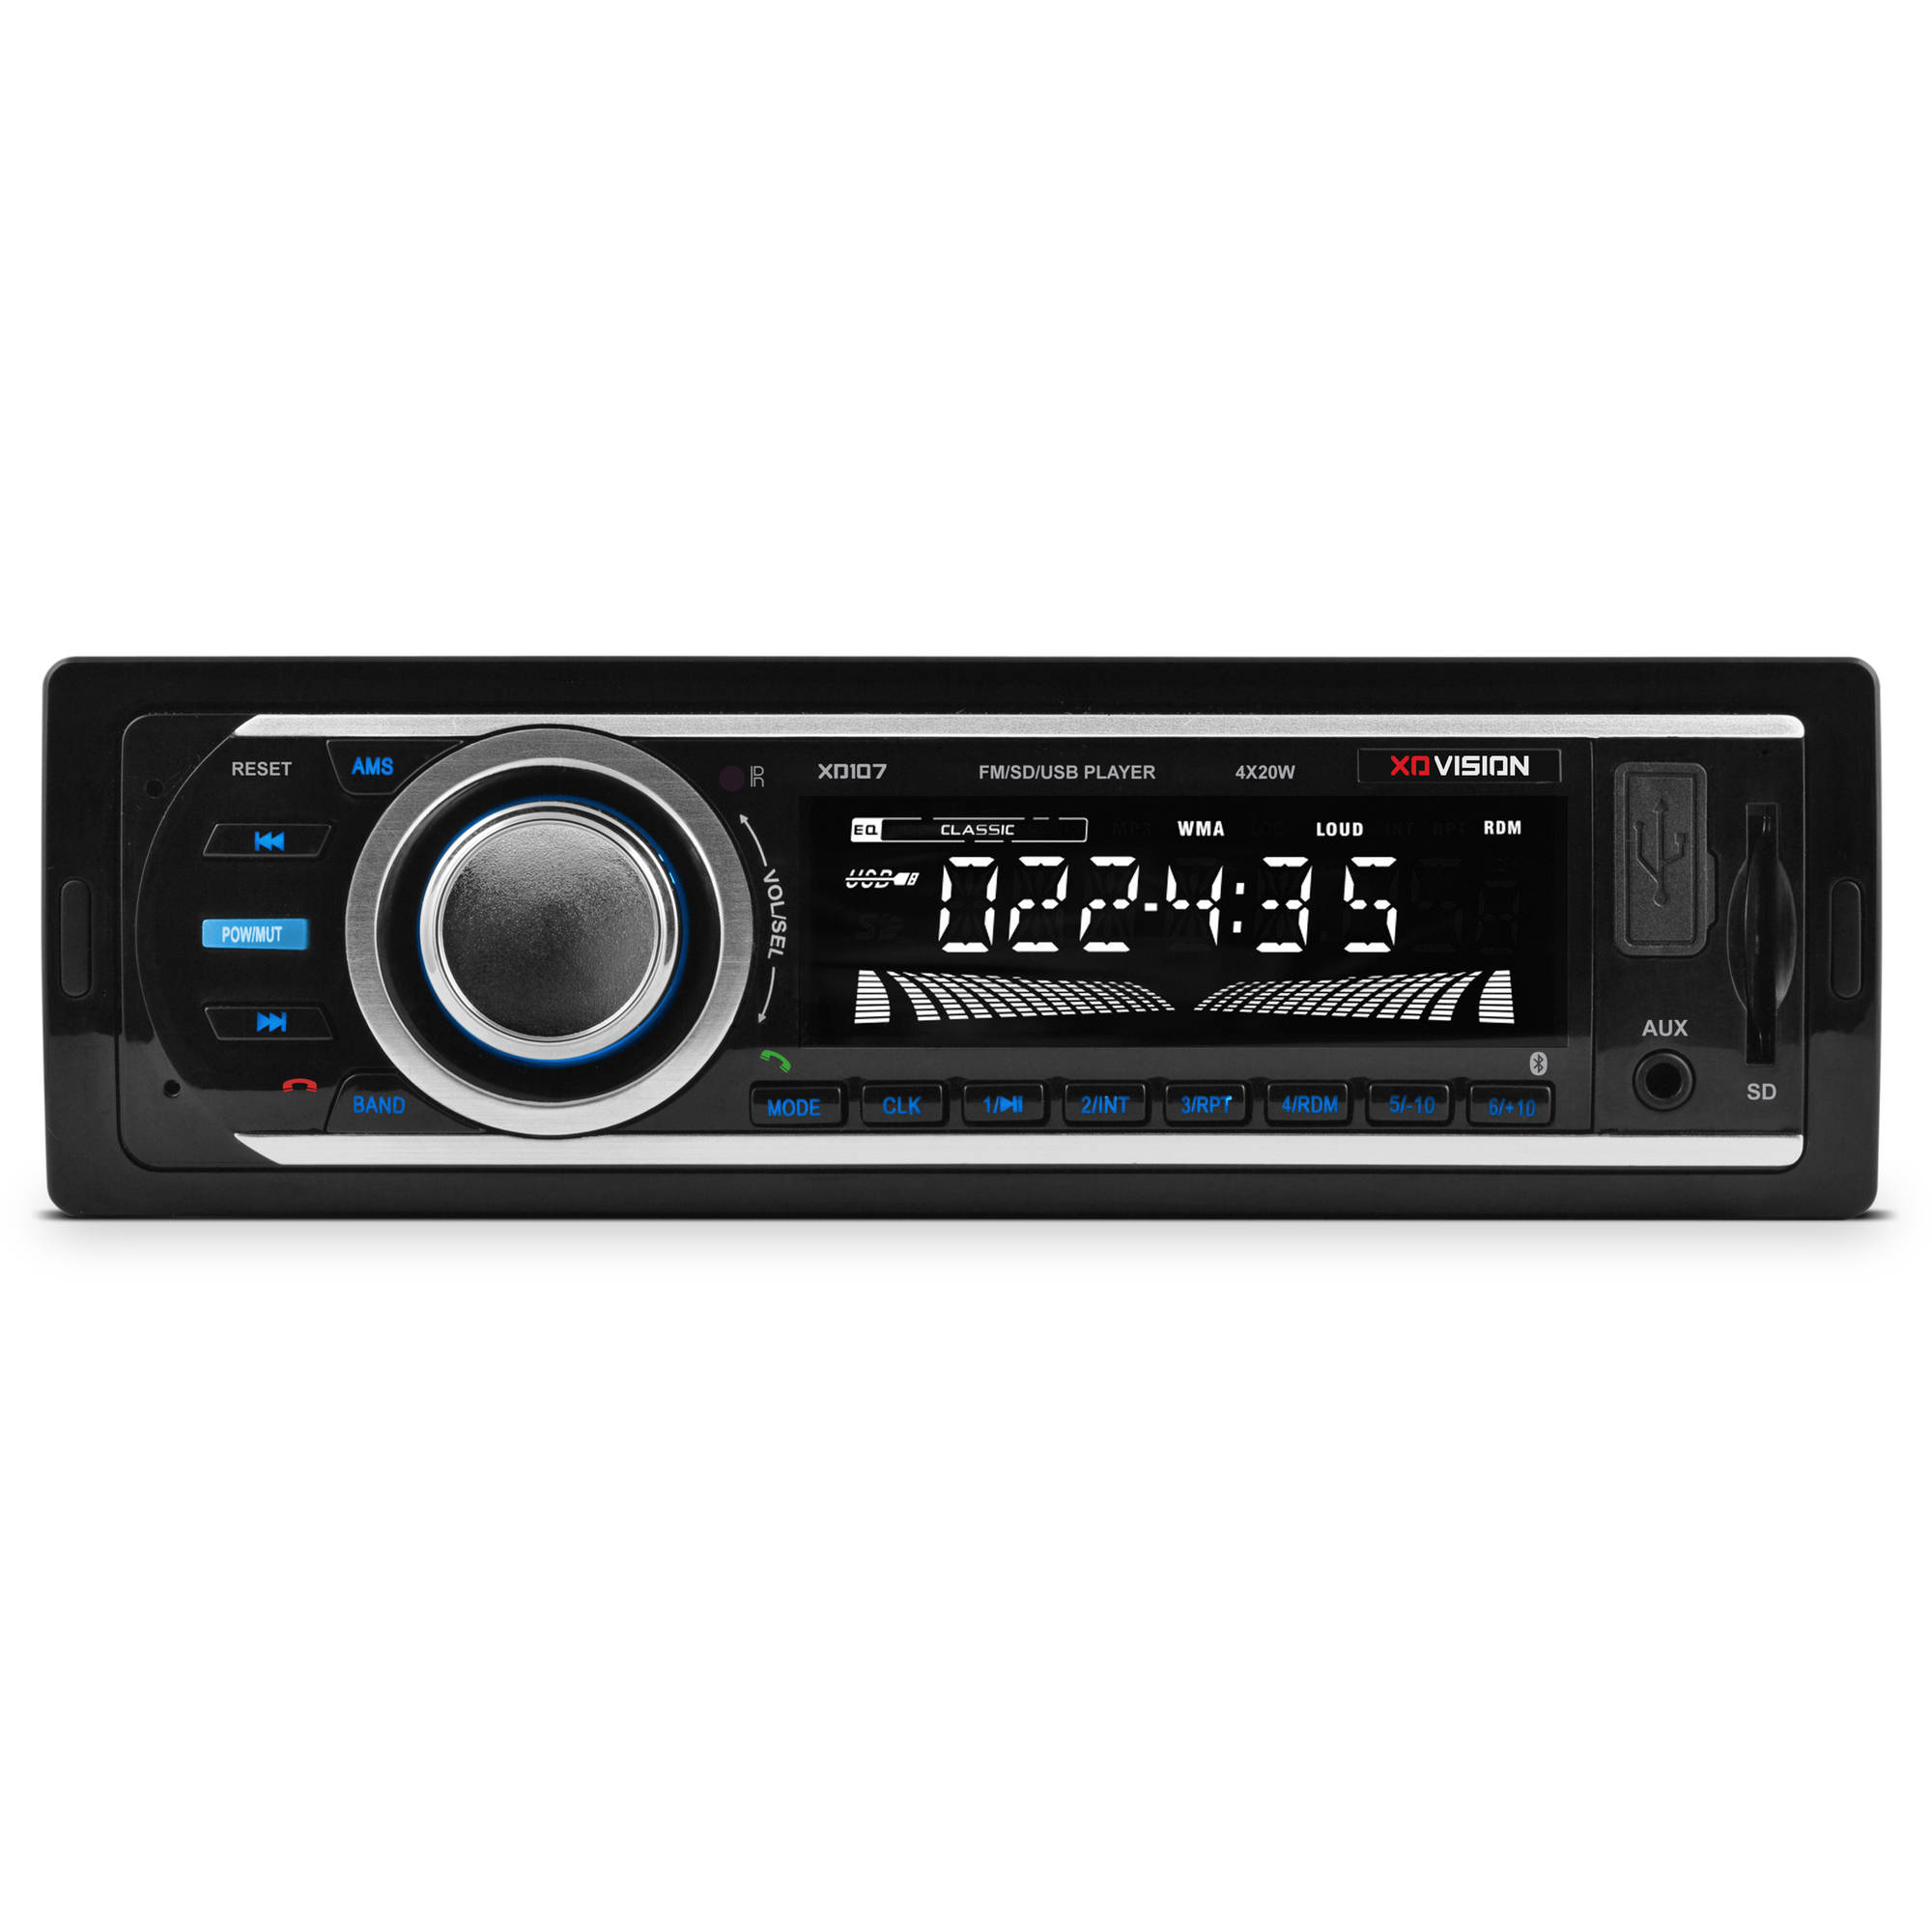 163d50e9 fab0 43d9 bc18 0a15c3289d3d_1.3778917bac34245adec16584bff5b2e5 xo vision xd107bt car stereo mp3 fm receiver with bluetooth best buy radio wire harness at n-0.co